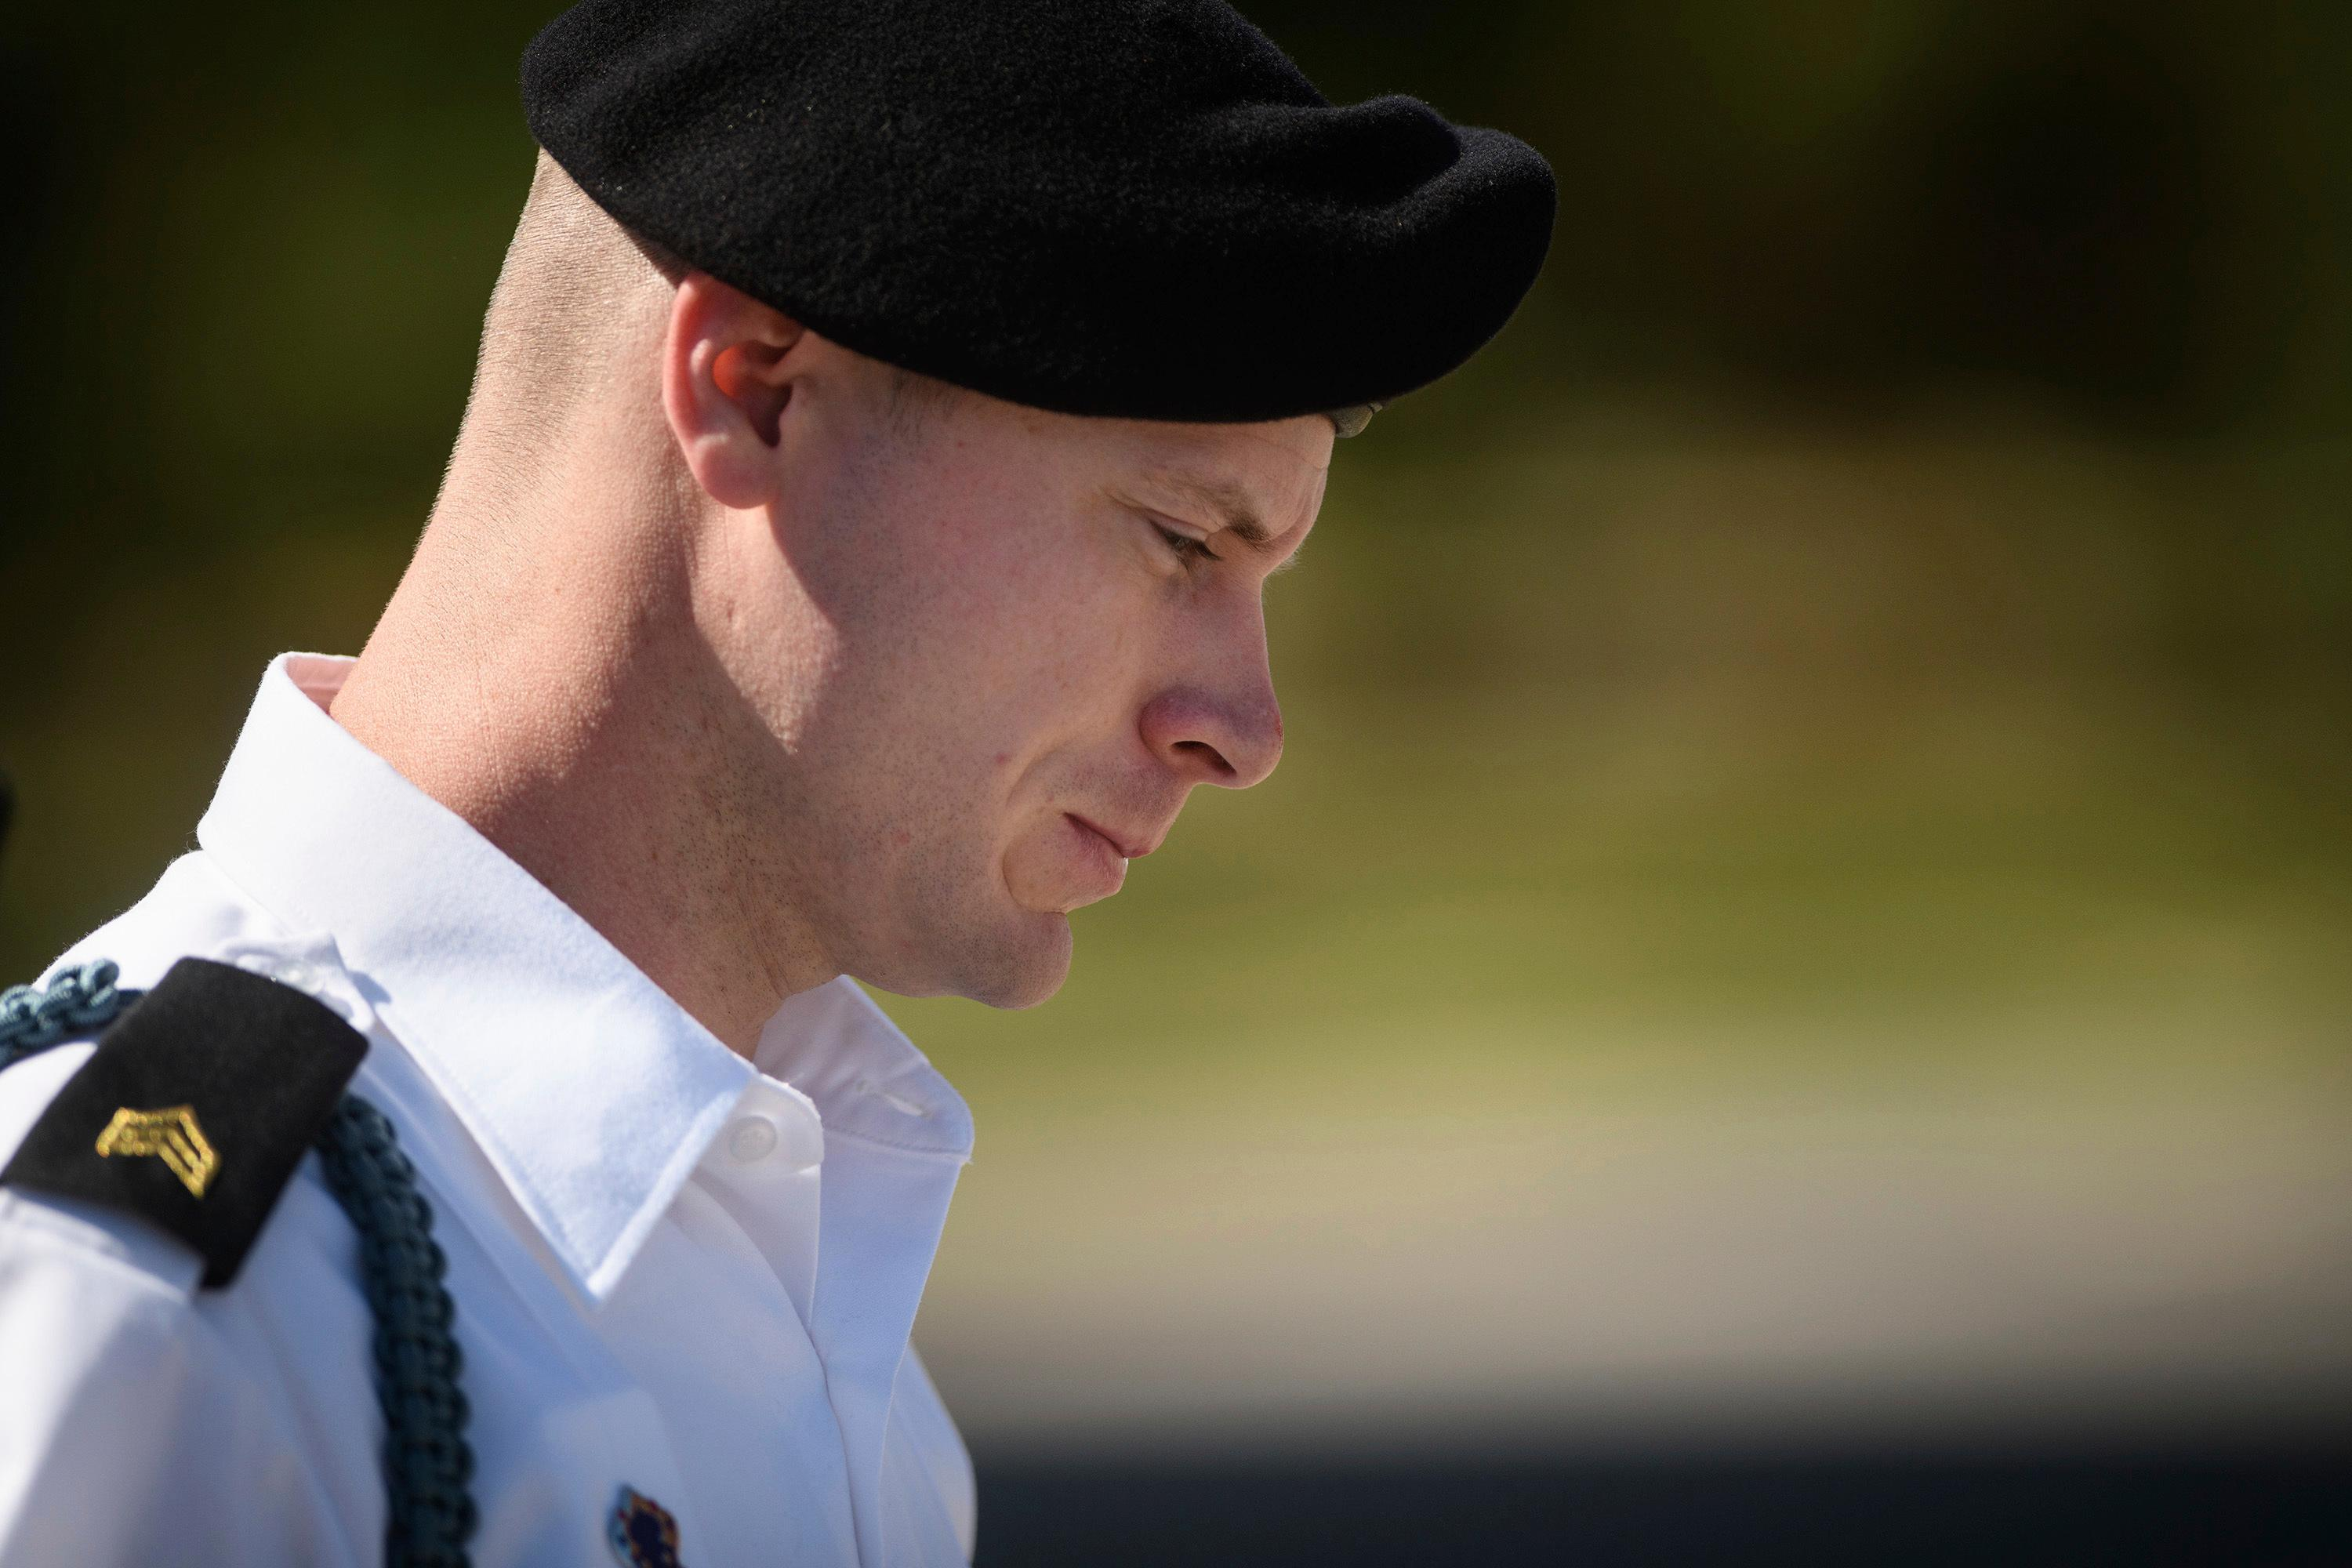 FILE- In this Sept. 27, 2017, file photo, Army Sgt. Bowe Bergdahl leaves a motions hearing during a lunch break in Fort Bragg, N.C. (Andrew Craft/The Fayetteville Observer via AP, File)